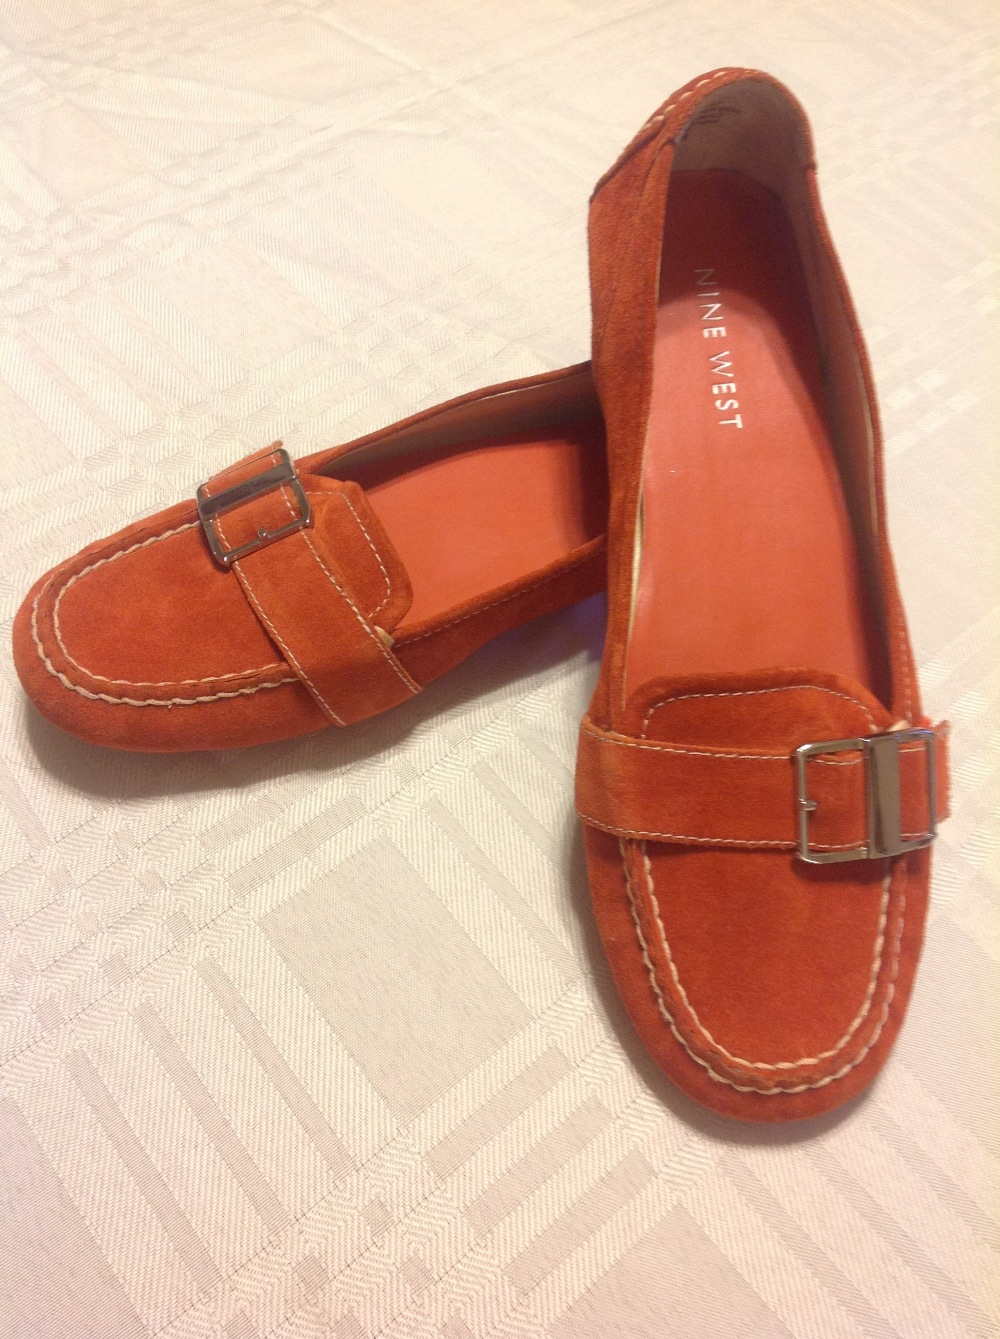 20be4d4ff23ac Nine West Women s LEEZAO Shoes Orange Taupe Suede Driving Loafers Size 9